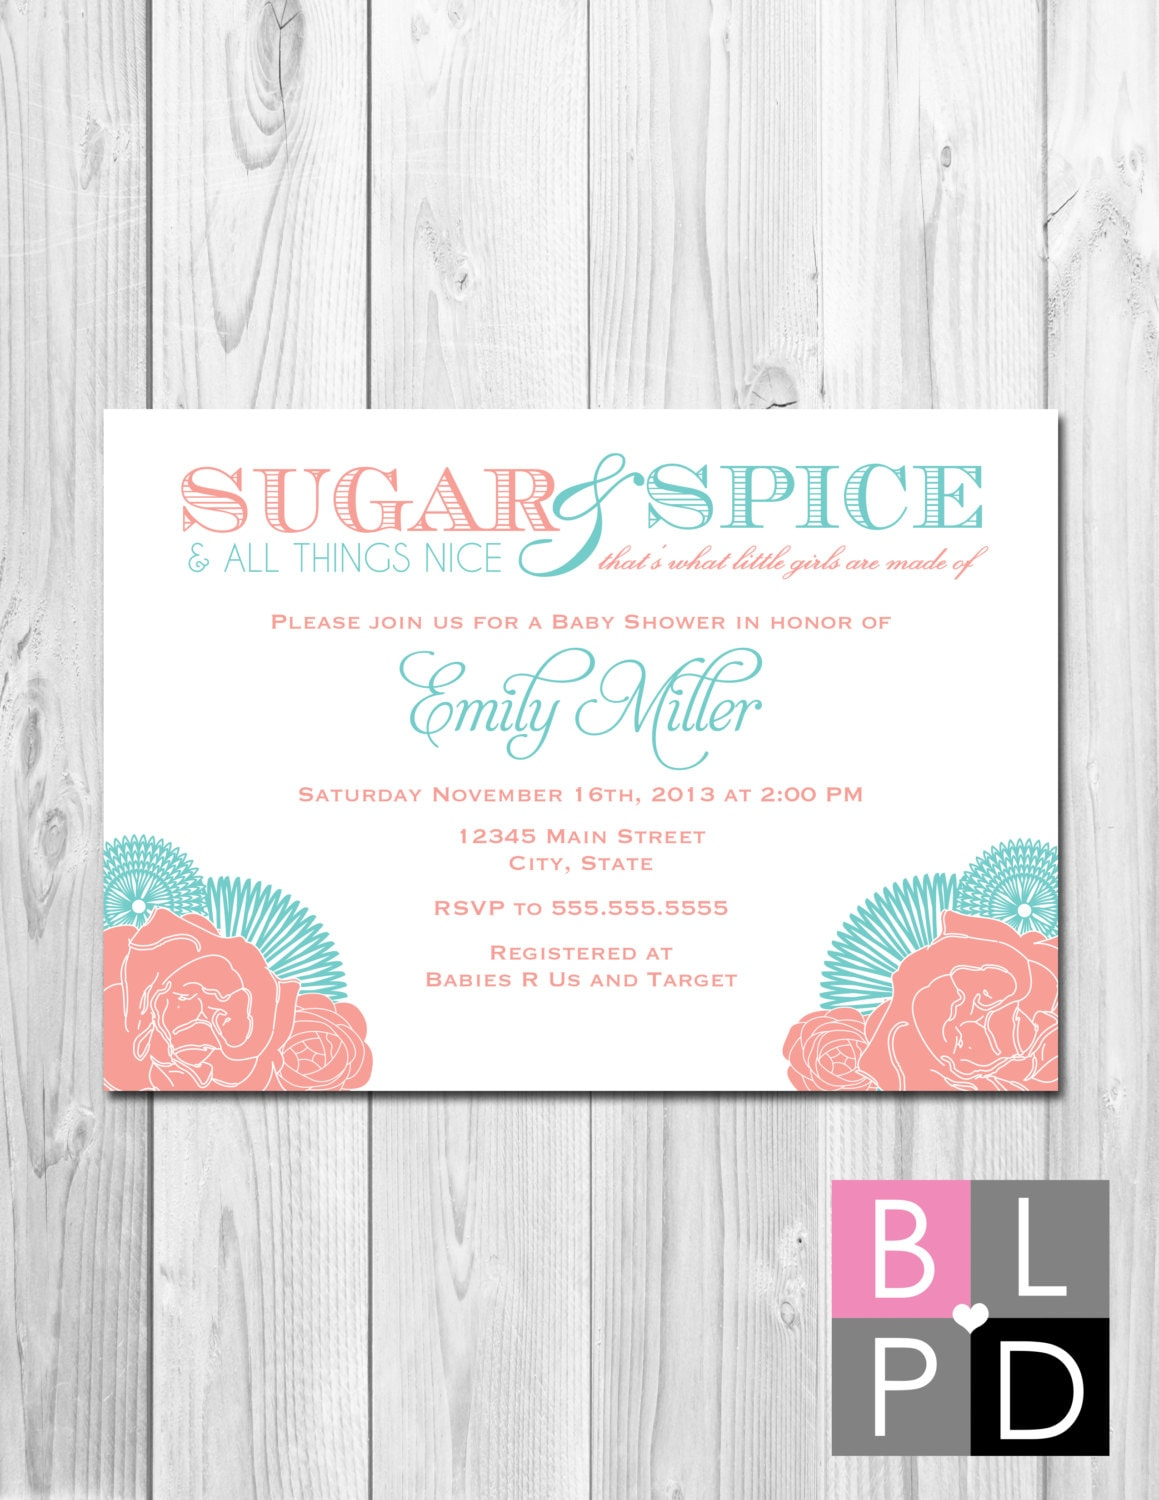 Sugar and Spice Baby Shower Invitation Corner Flowers